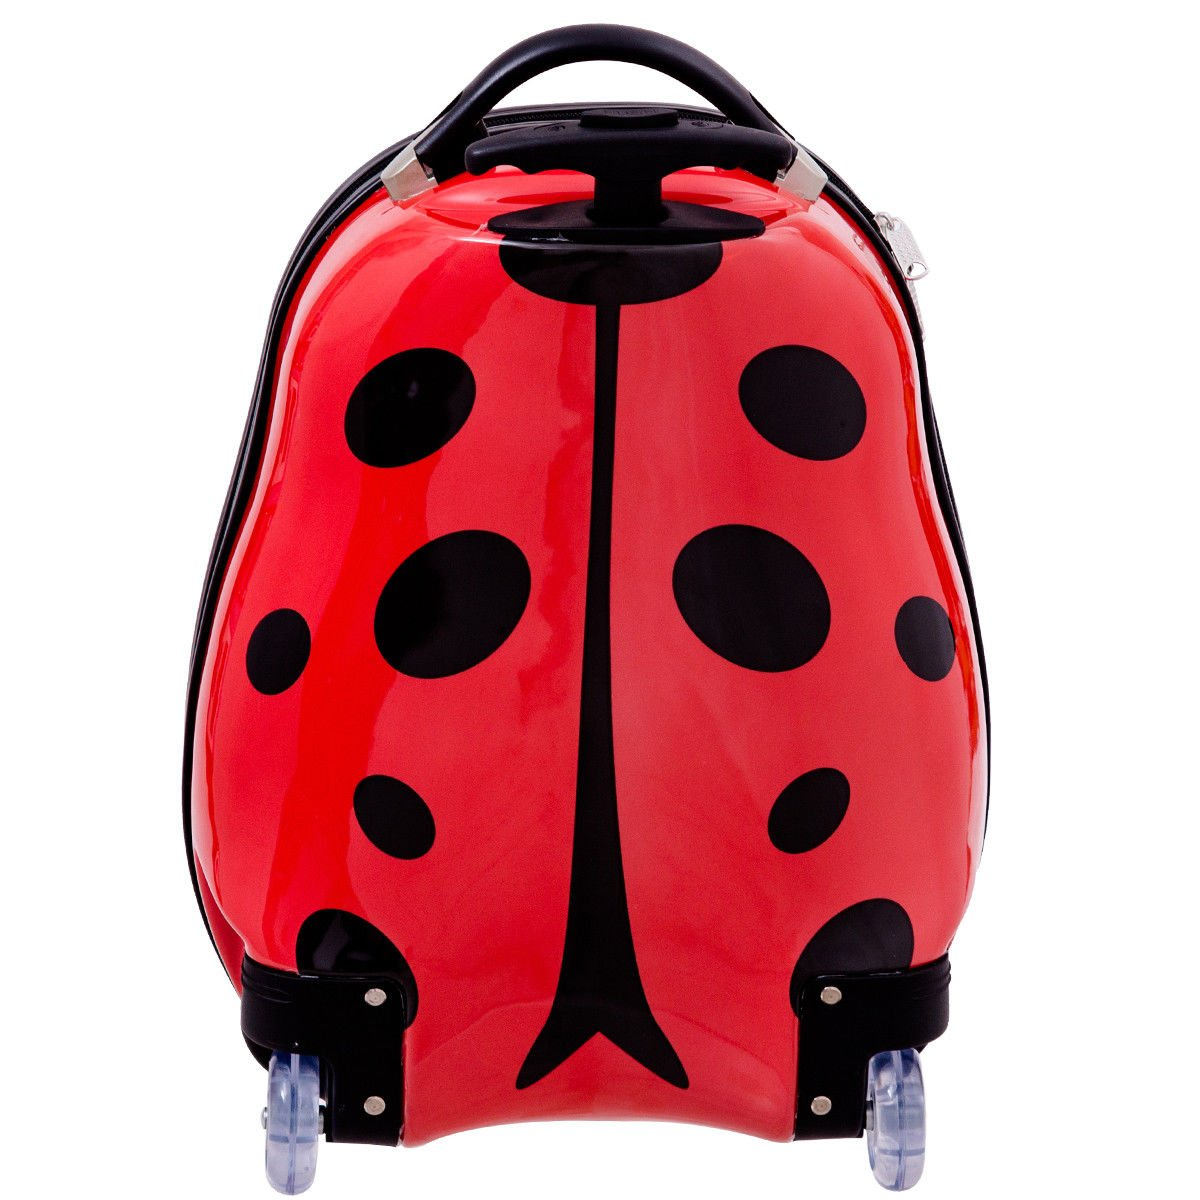 Goplus 2Pc 13'' 19'' Kids Carry On Luggage Set Travel Trolley Suitcase (Ladybug) by Goplus (Image #4)